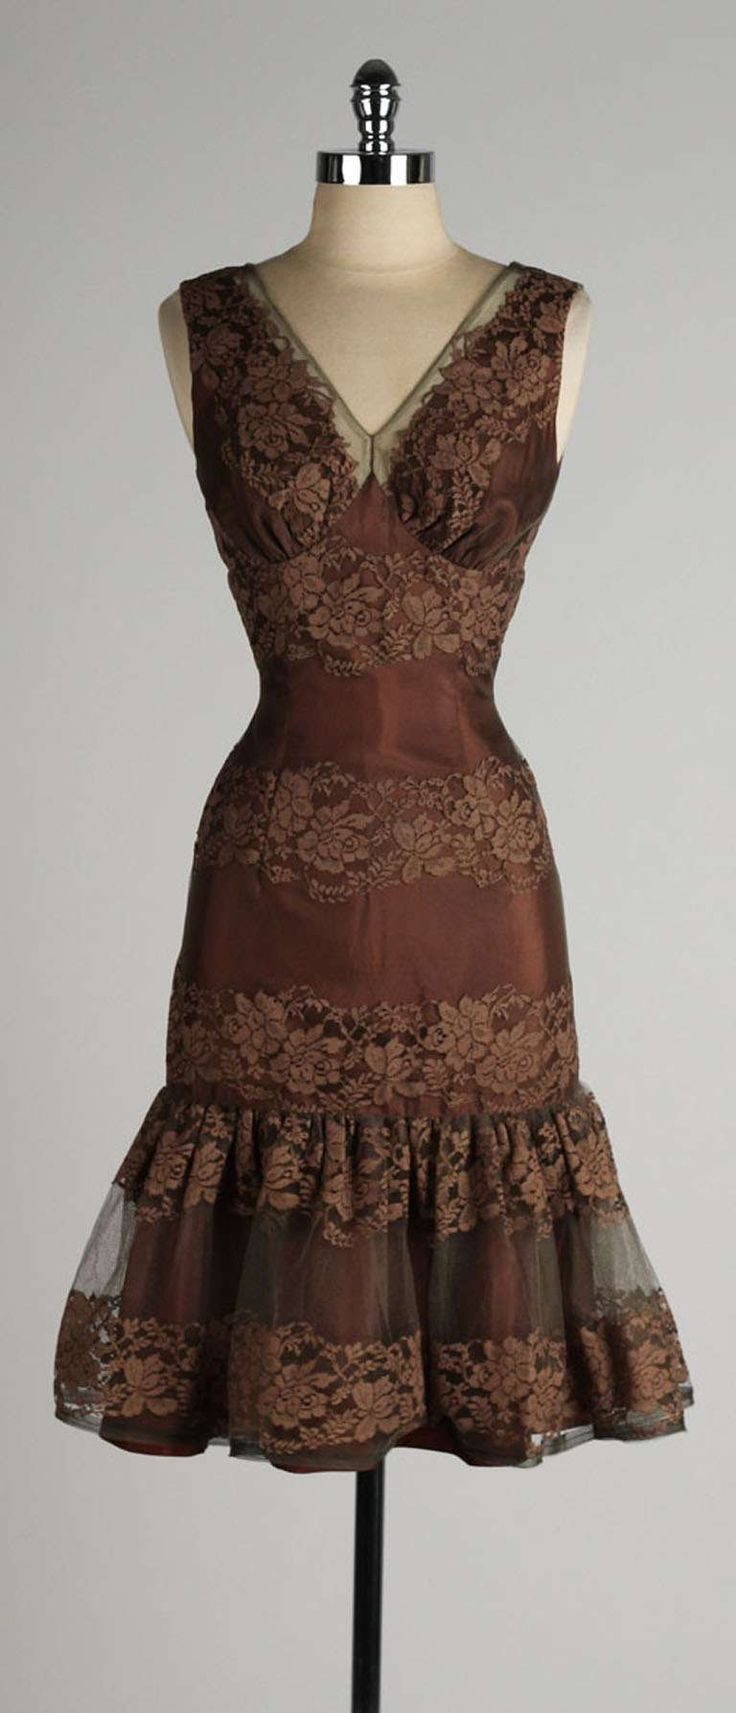 down jacket sale Chocolate brown satin cocktail dress with lace and chiffon overlay  1950s  Divine